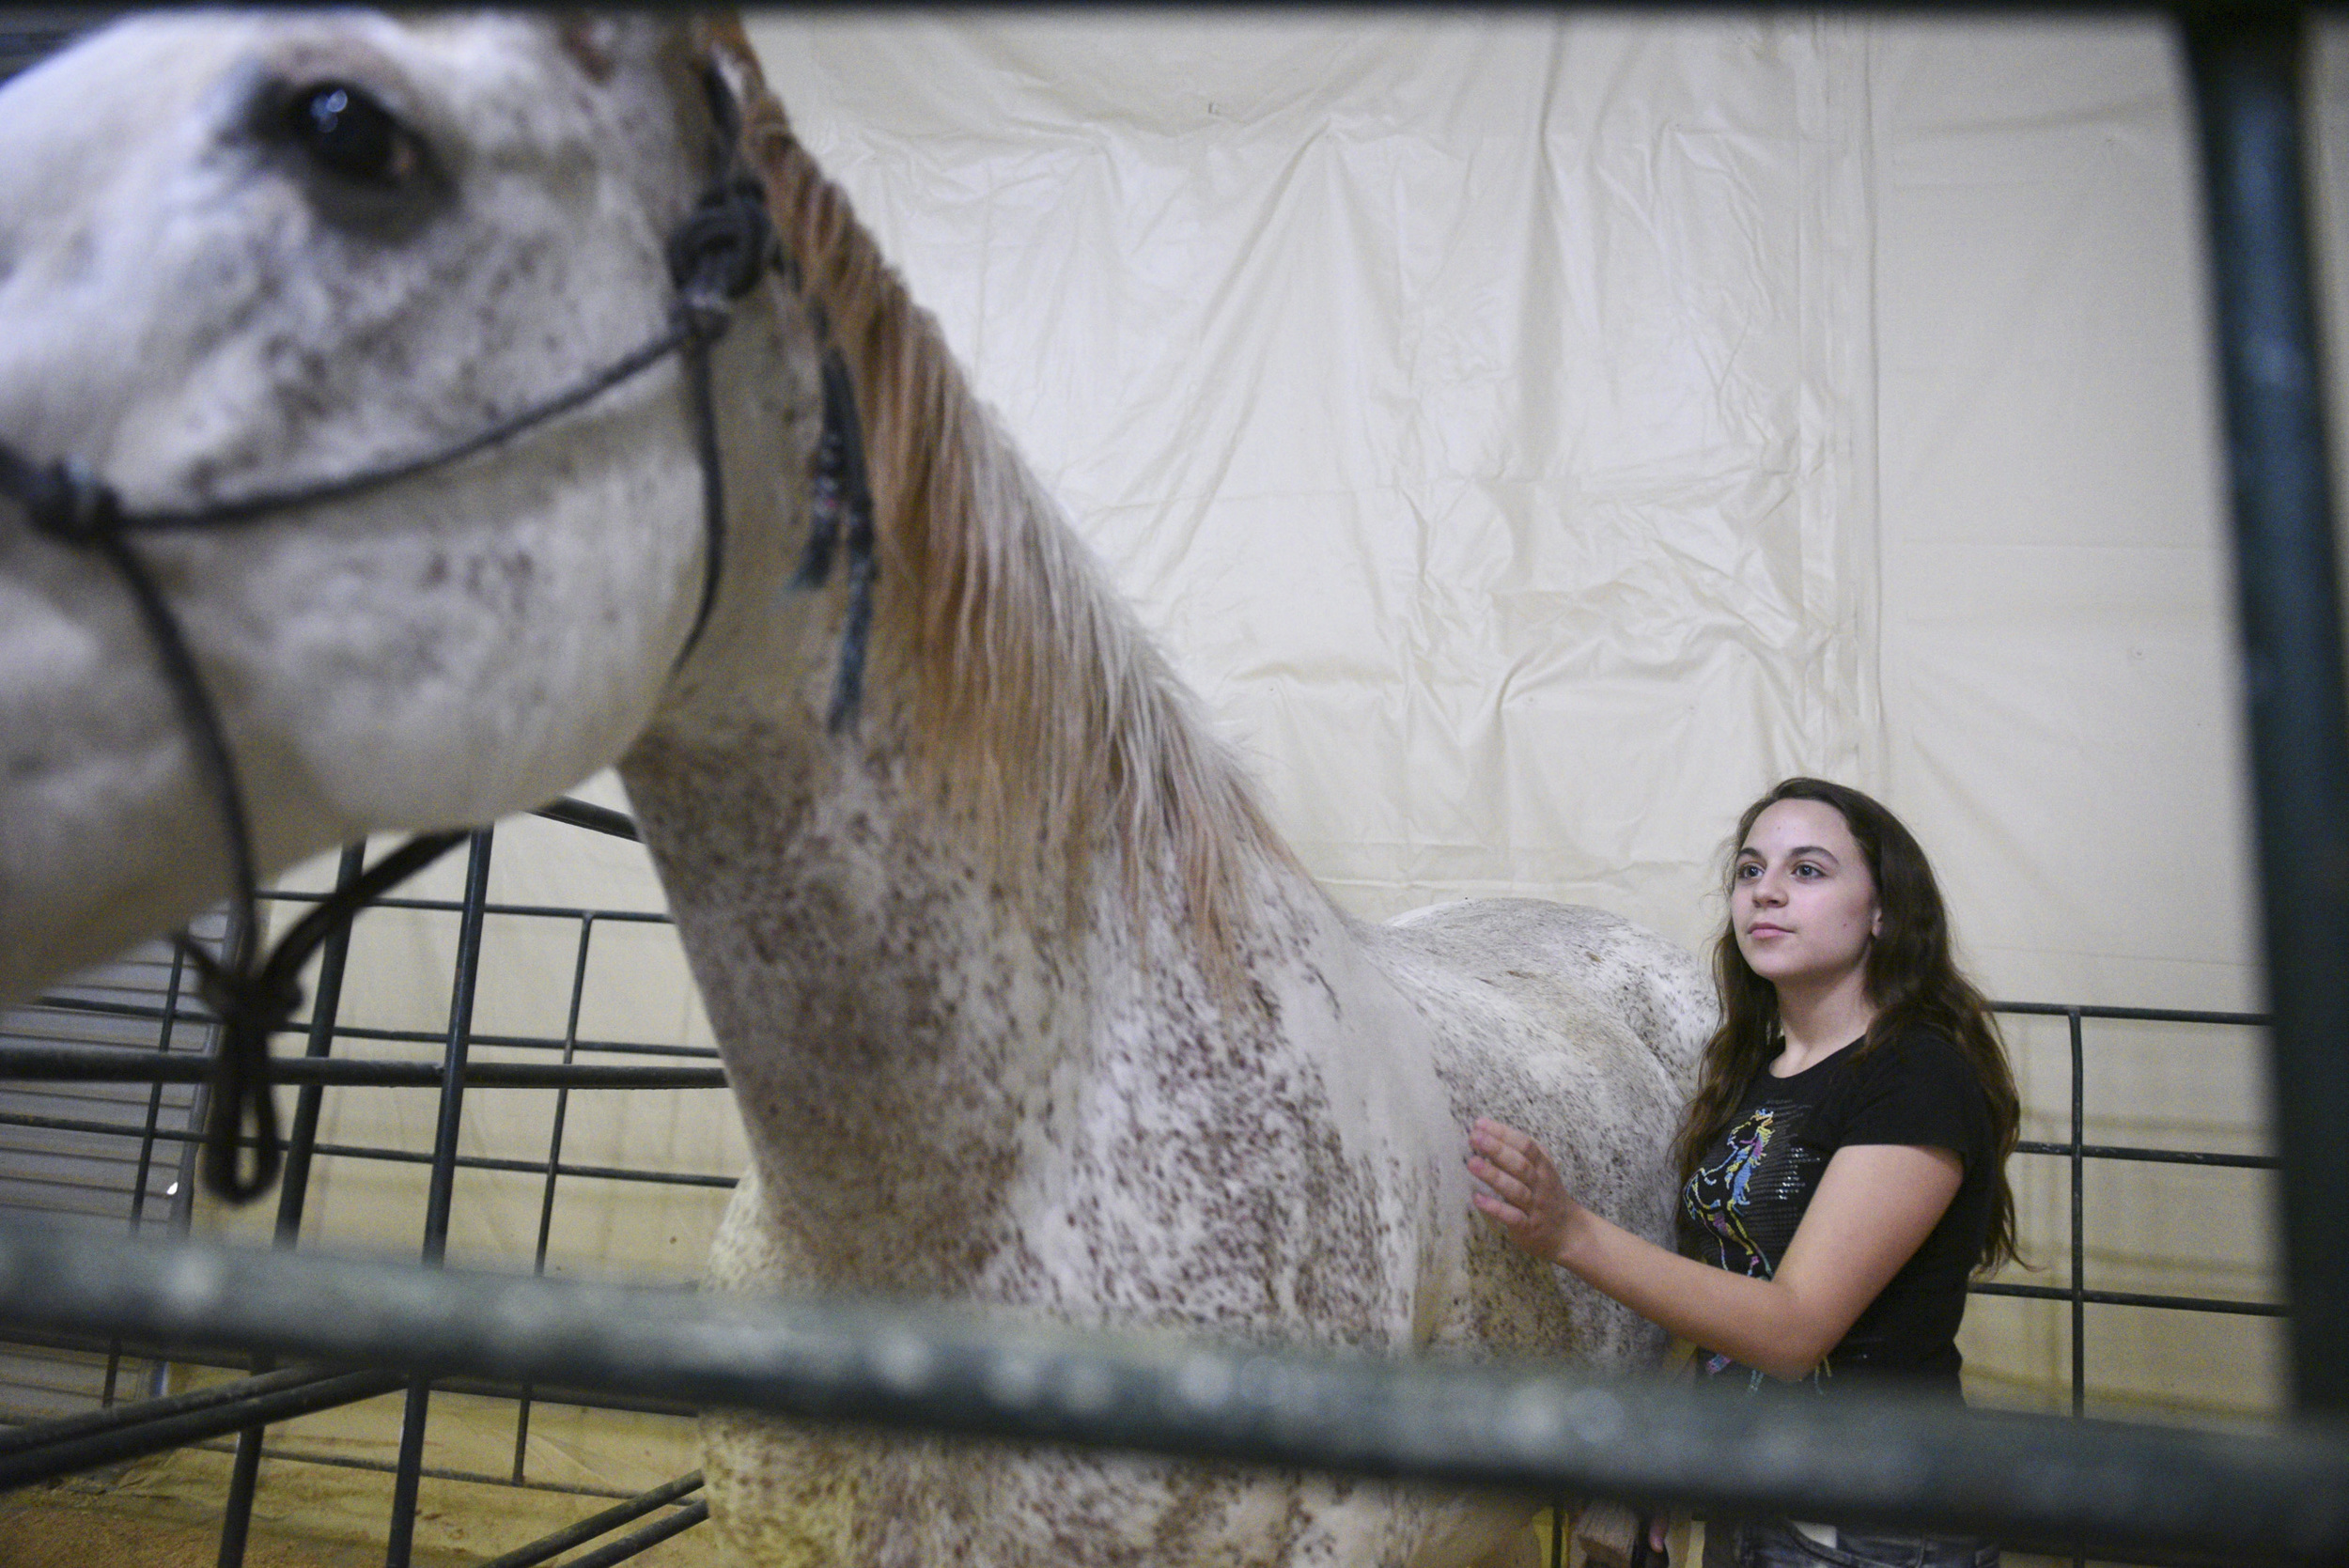 Horse Assisted Therapy (HAT) participant Alyssa Budd, 12, brushes horse, Jet, before taking Jet for a ride at Paradise Ranch in Las Vegas, Wednesday, June 3, 2015.(Jason Ogulnik/Las Vegas Review-Journal)